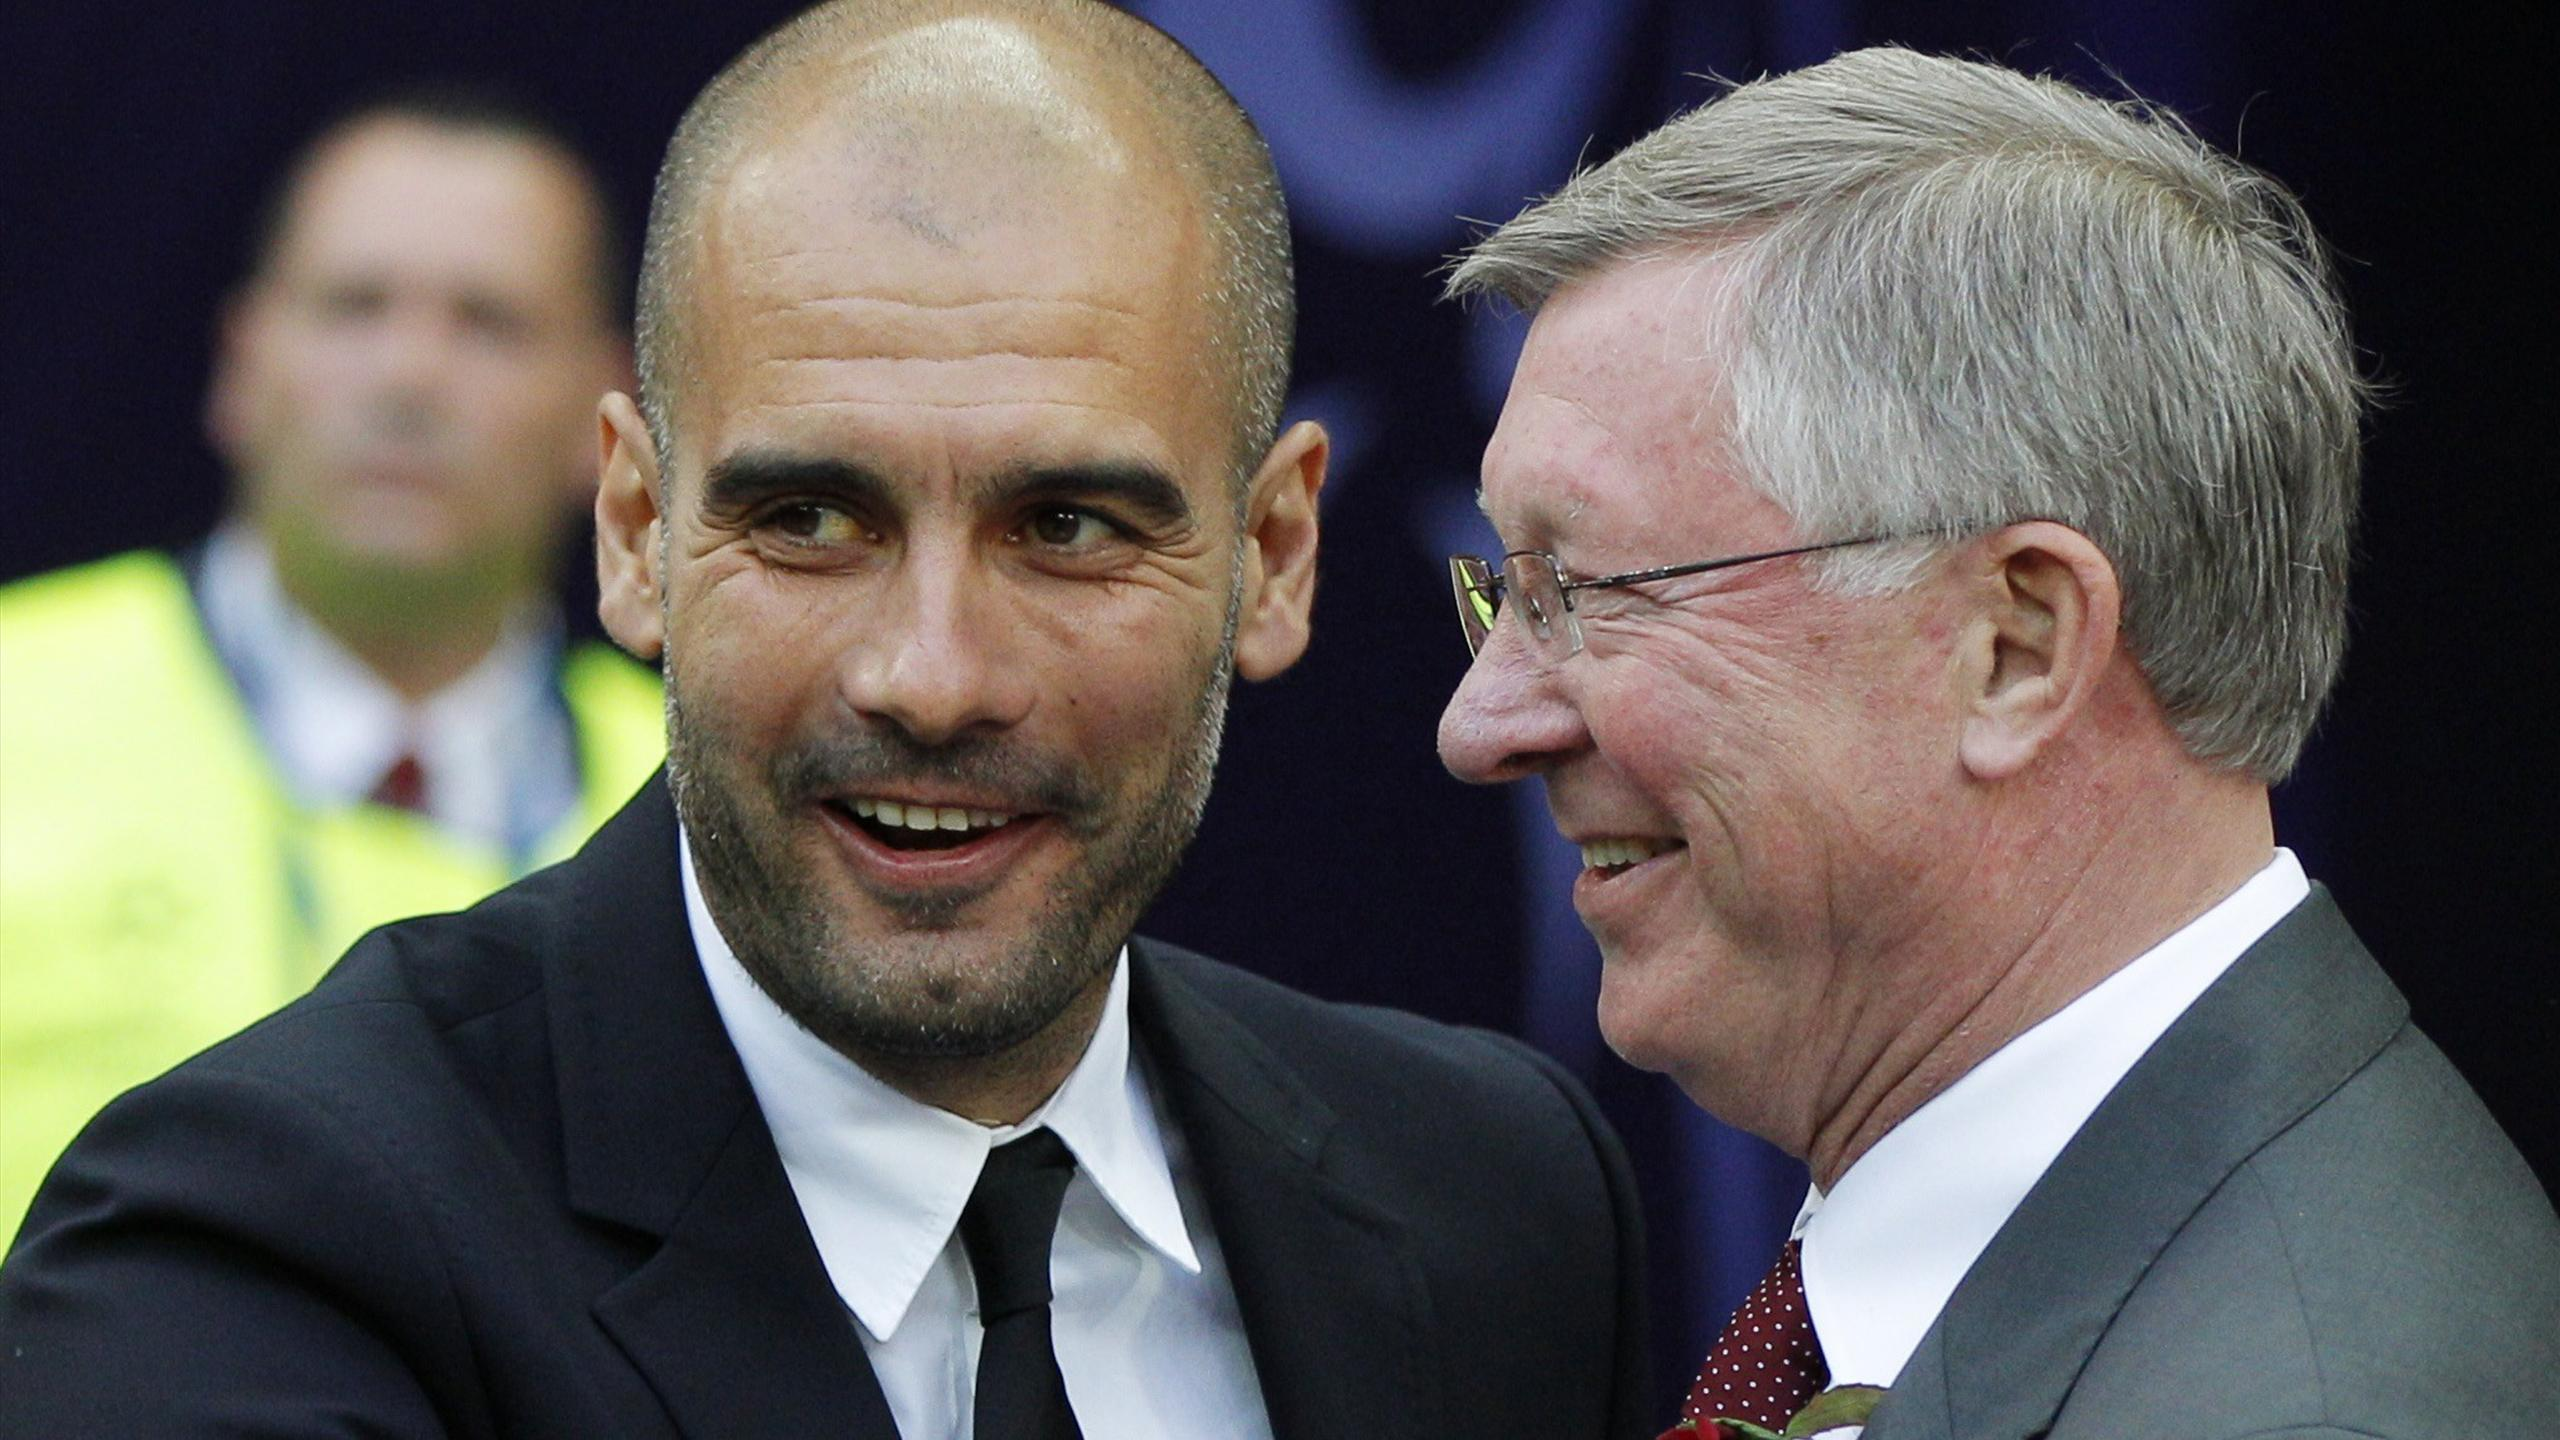 Former Barcelona coach Pep Guardiola (L) and former Manchester United manager Sir Alex Ferguson